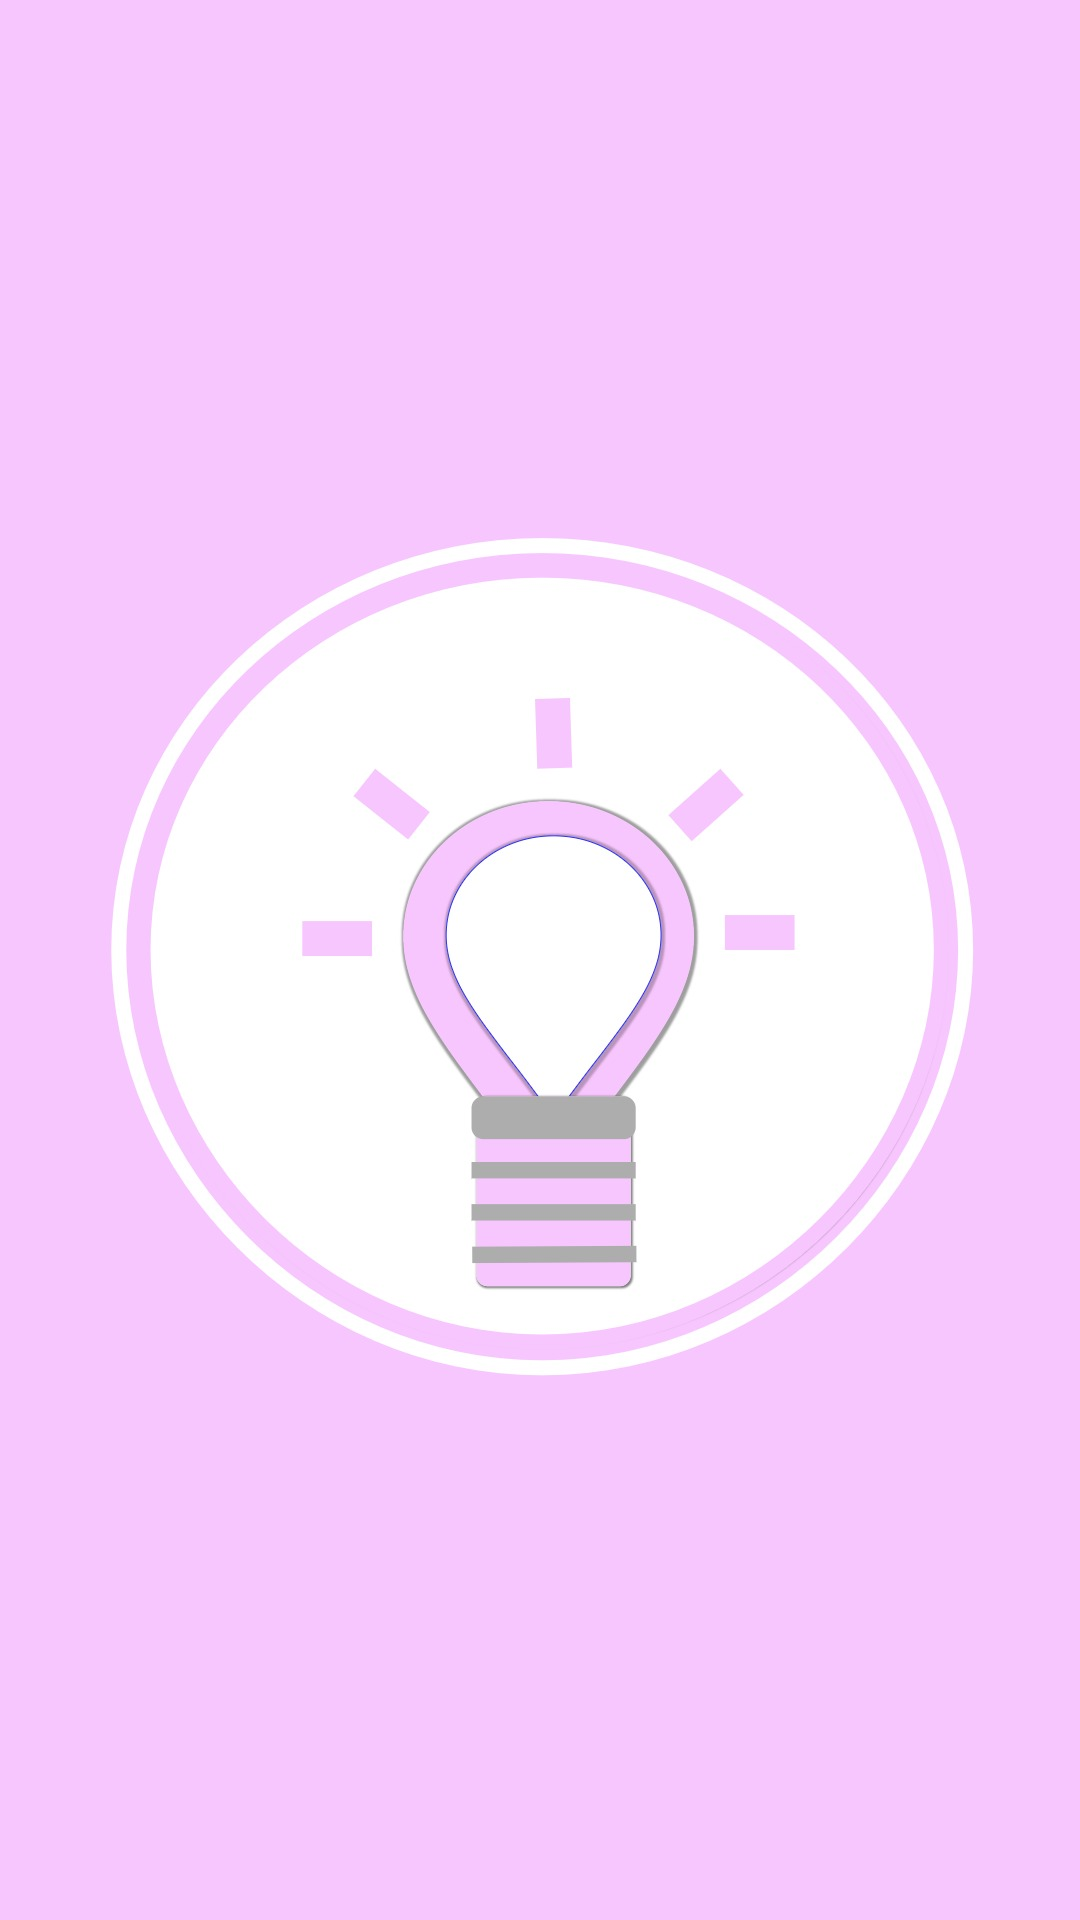 Instagram-cover-lightbulb-pink-lotnotes.jpg